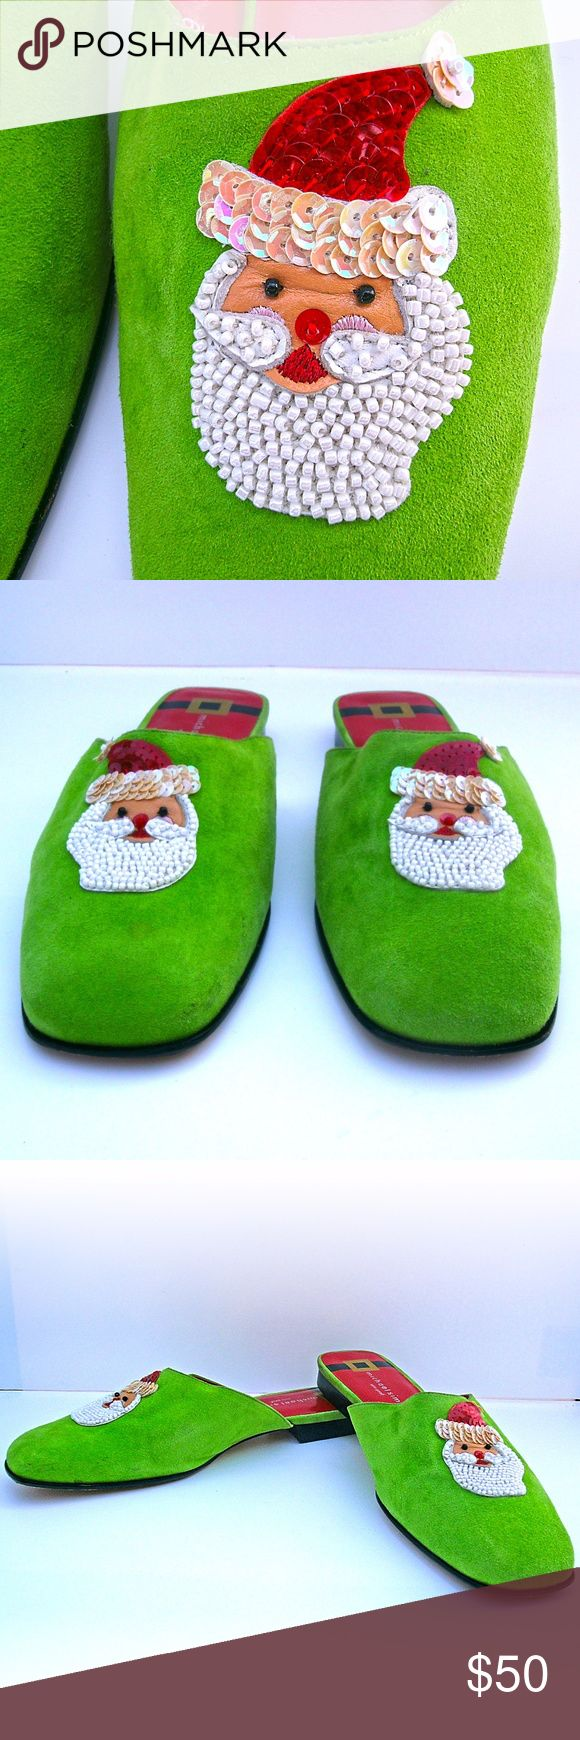 """Michael Simon Christmas Santa Mules Slides Shoes Michael Simon New YorkChristmas Santa Mules Slides Shoes Size 9 - EUC!  Green suede leather upper Sequin and beaded Santa Claus on vamp Leather soles Women's US Size: 9 M  Insoles length from heel to toe: 10.5"""" Outsoles width: 3.5"""" (at wides point) Approx. heel height: 0.5""""  Condition: Pre-owned, EXCELLENT gently used condition. Free of stains, odor and damages. Light creasing. The insoles and outsoles are clean with minimal signs of wear…"""